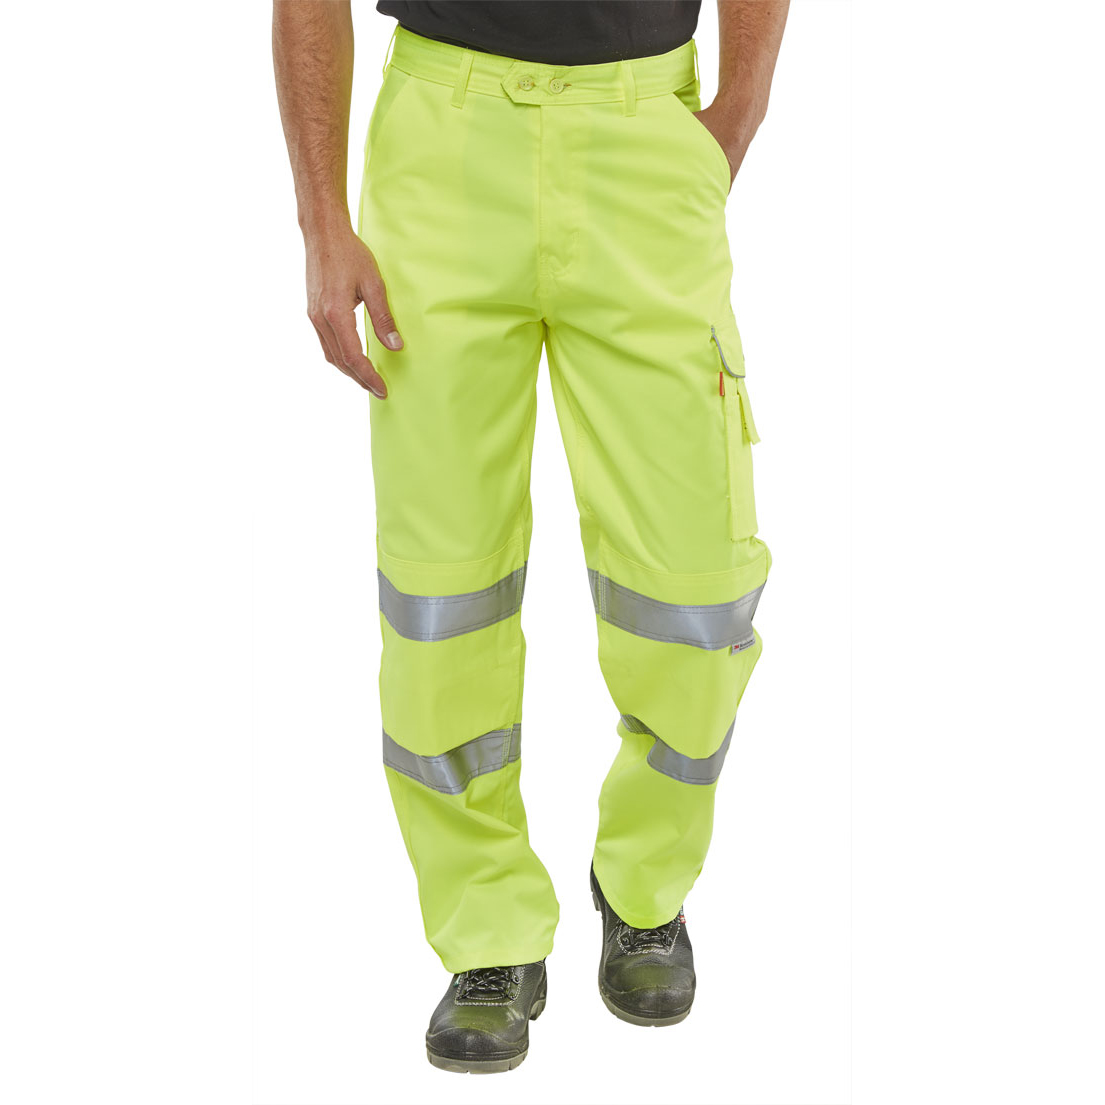 Limitless B-Seen Polycotton Trousers EN ISO20471 Saturn Yellow 28 Long Ref PCTENSY28T *Up to 3 Day Leadtime*